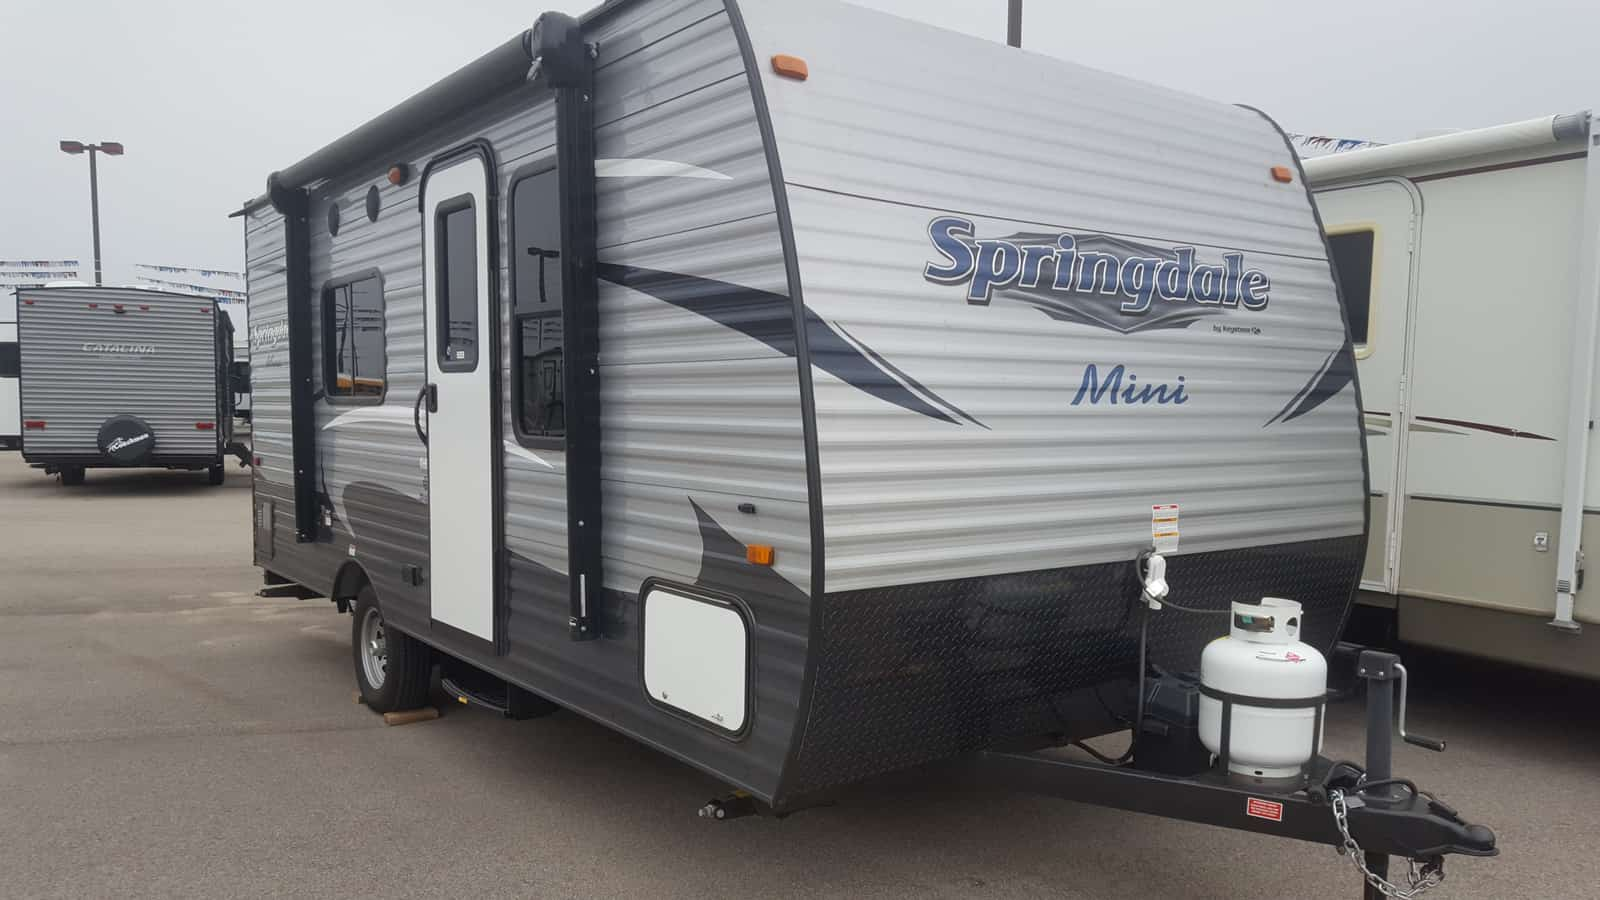 USED 2018 Keystone SUMMERLAND MINI 1700FQ - American RV